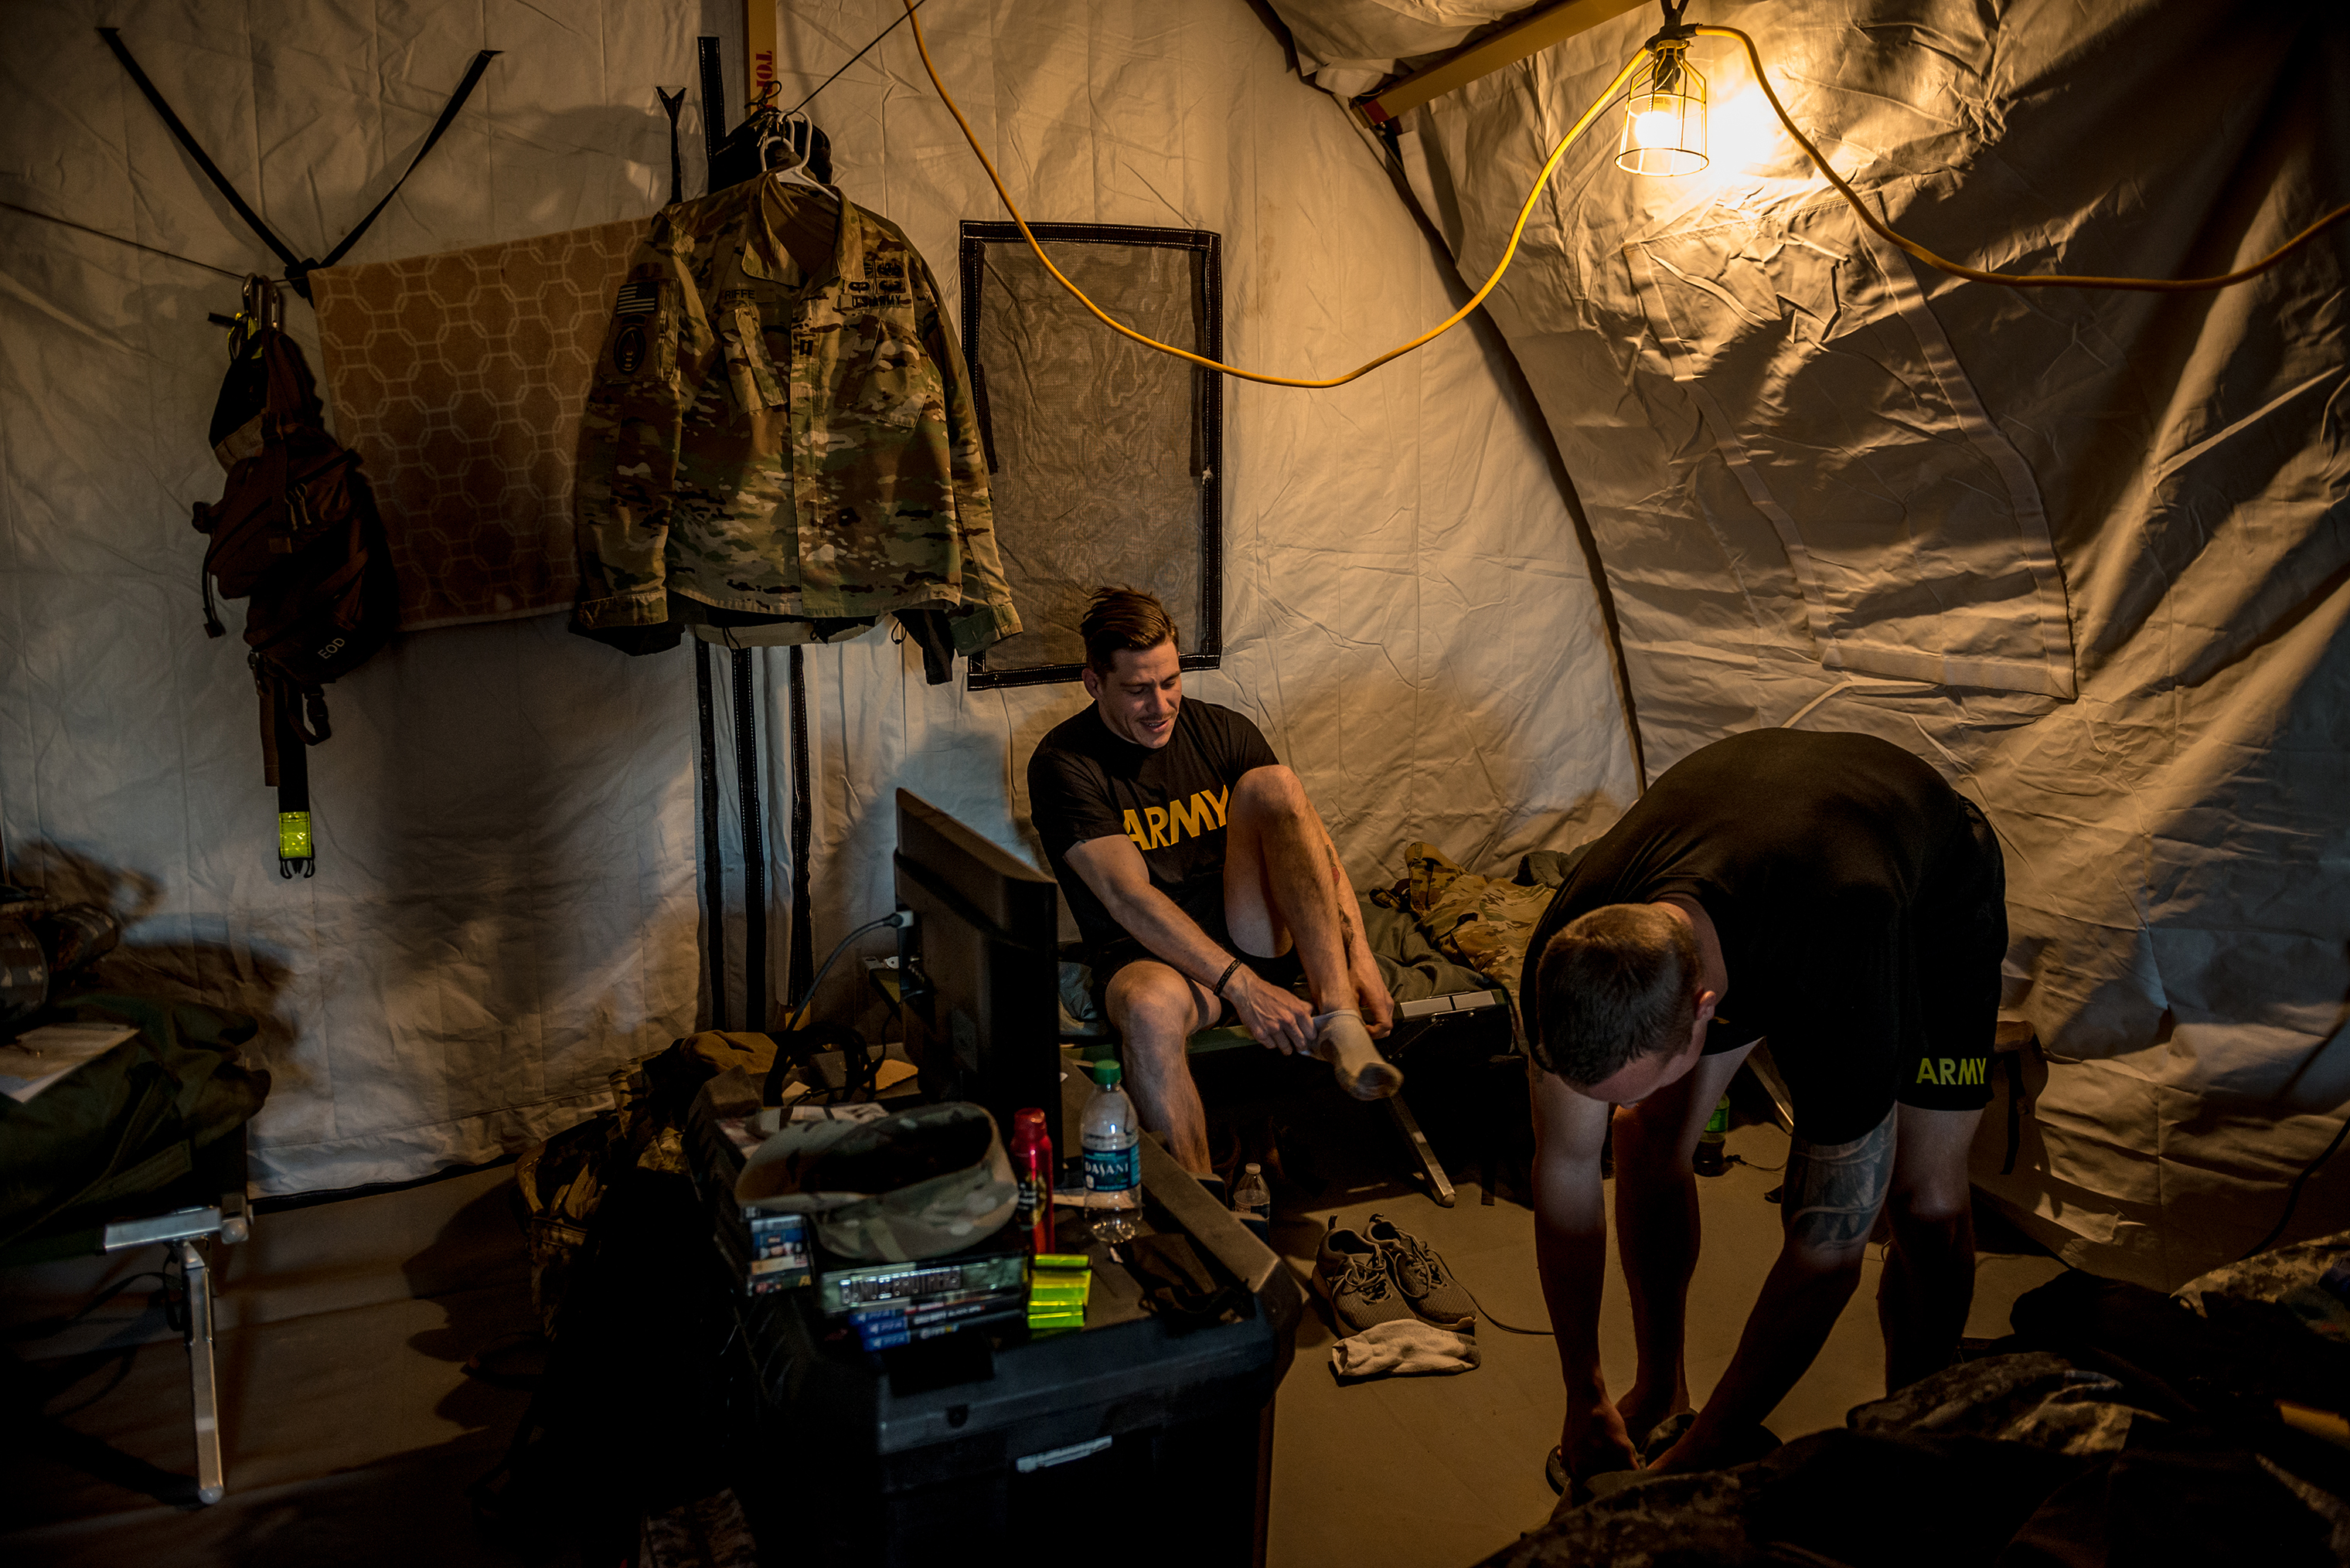 Cpt. Jacob Riffe, 29, from Augusta, Ga., puts his shoes on after waking up just after dawn inside his unit's tent.